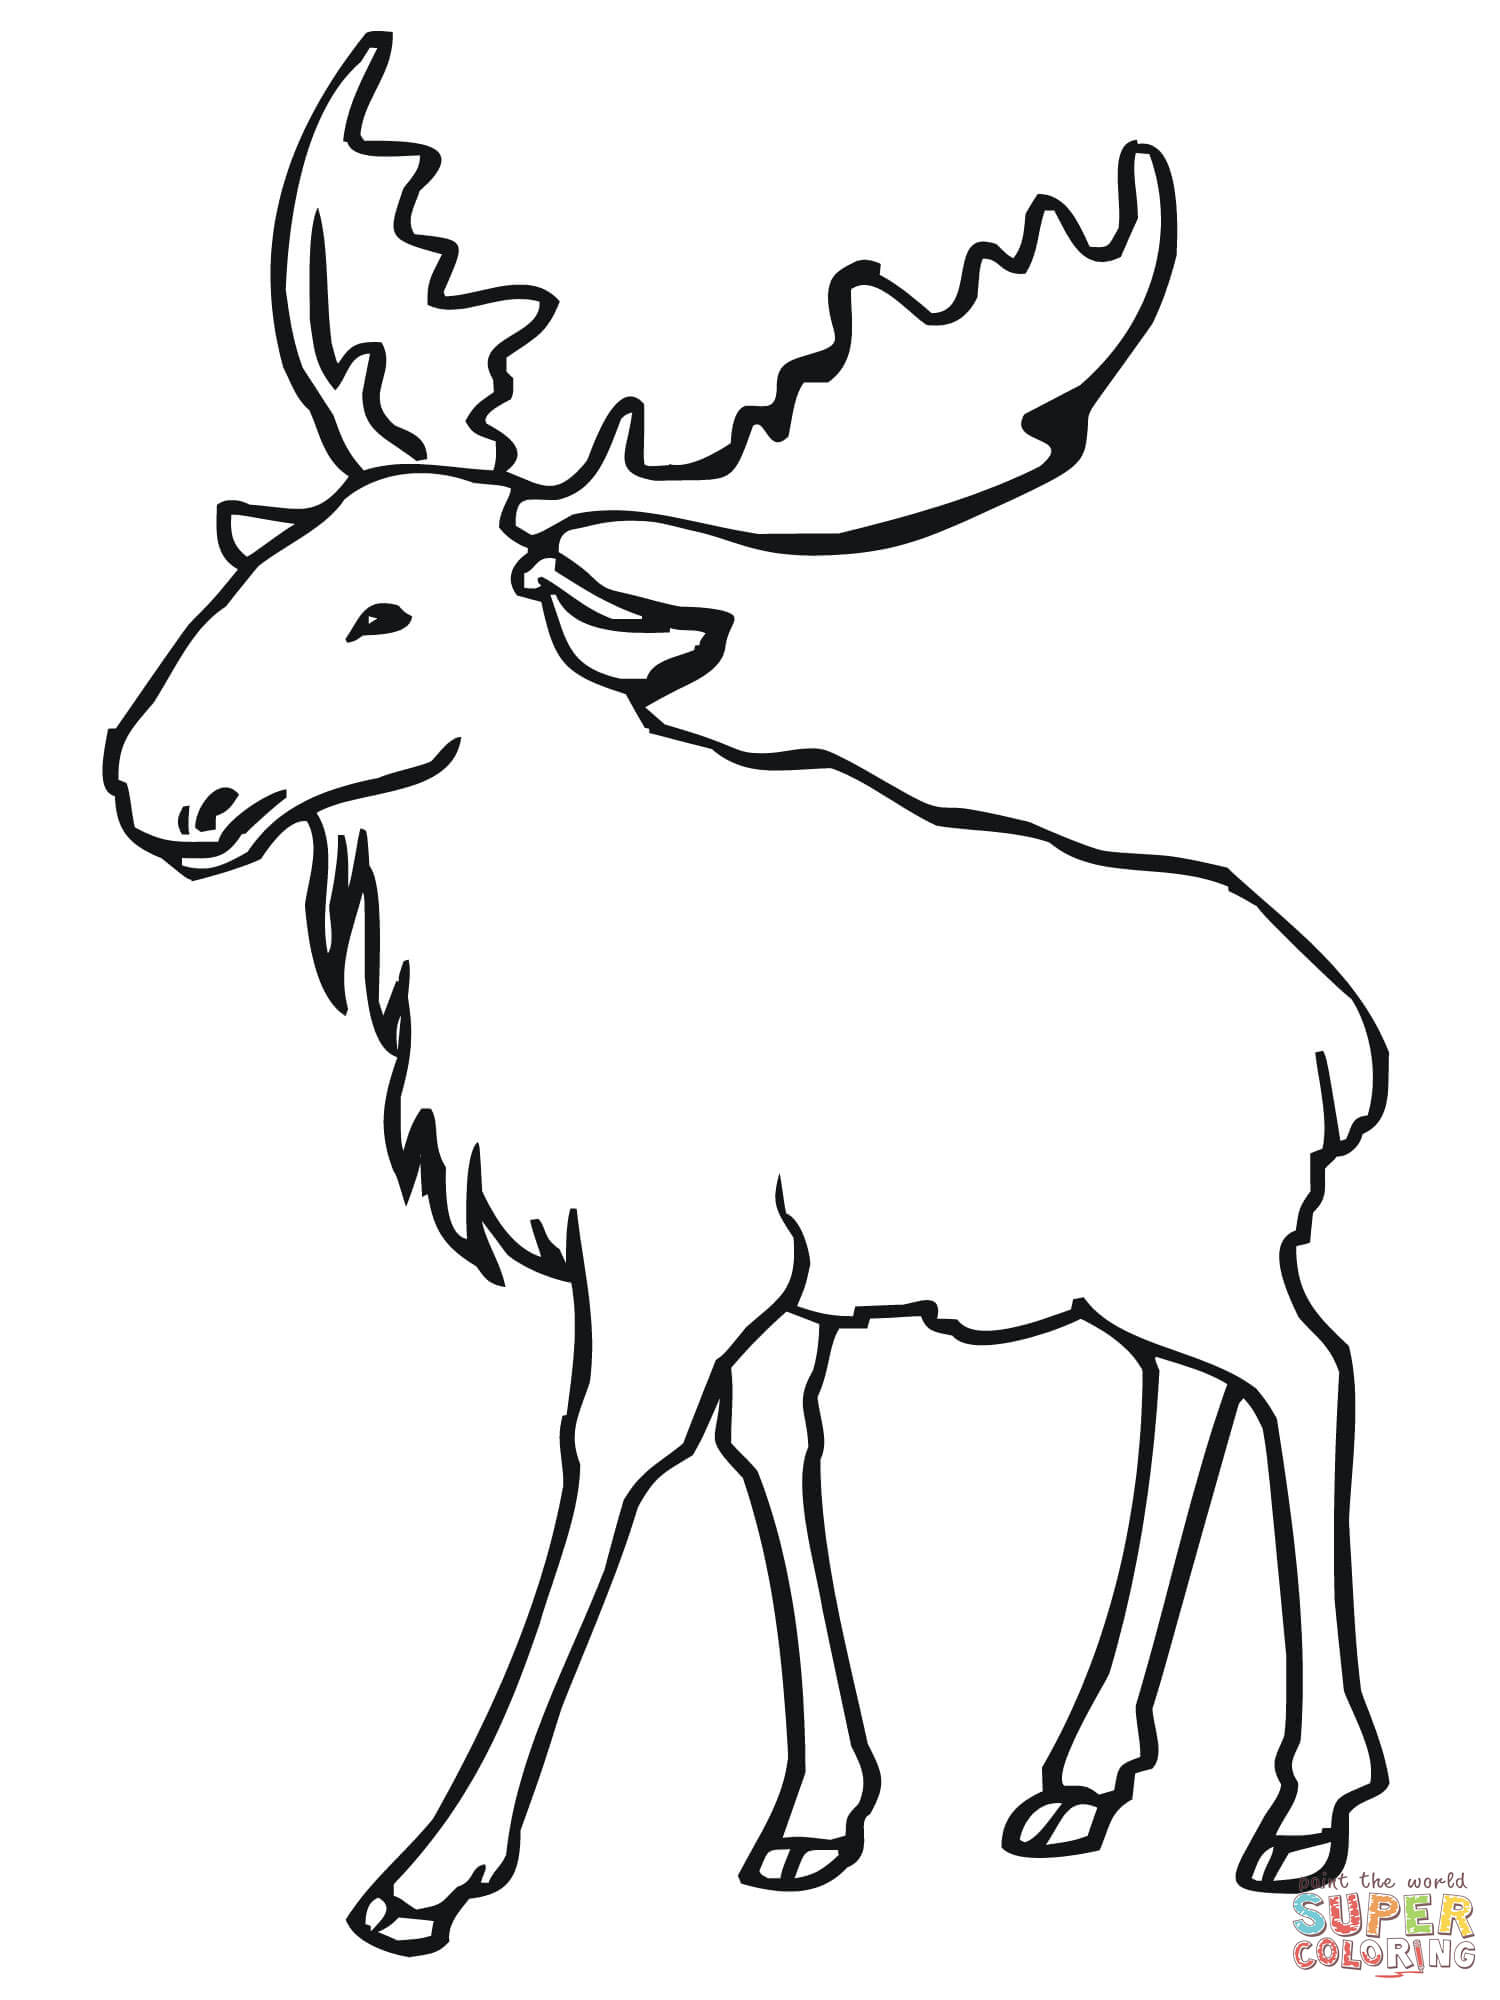 moose-coloring-page-0010-q1